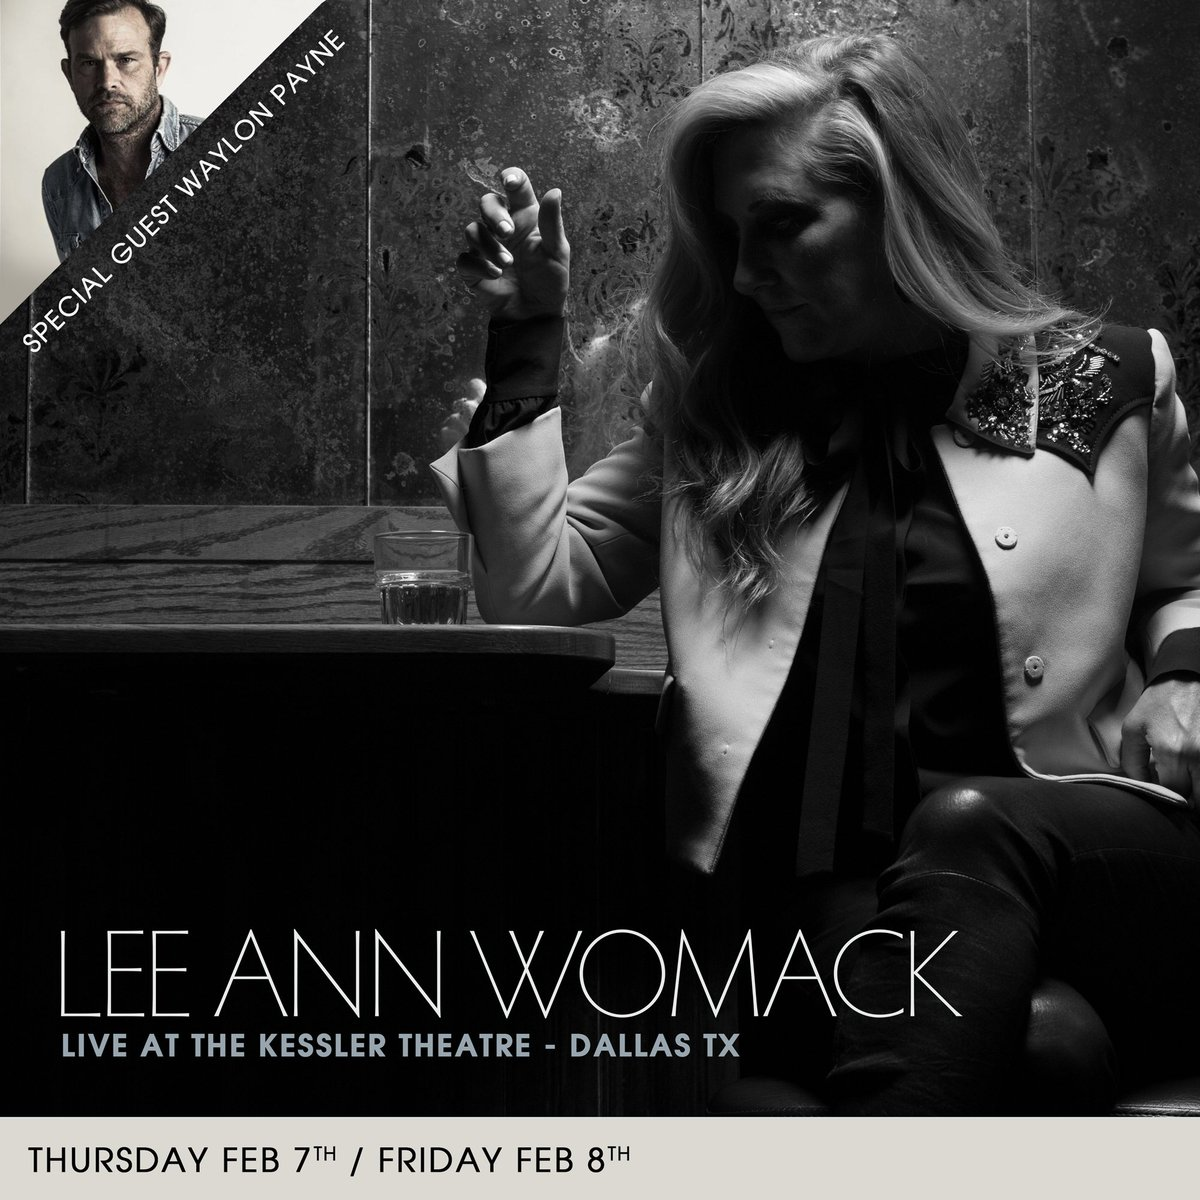 Dallas, I'm headed your way for two nights at @KesslerTheater in February with special guest, @WaylonPayne!  February 7 - http://bit.ly/2SUNbqQ  February 8 - http://bit.ly/2H5WS4w